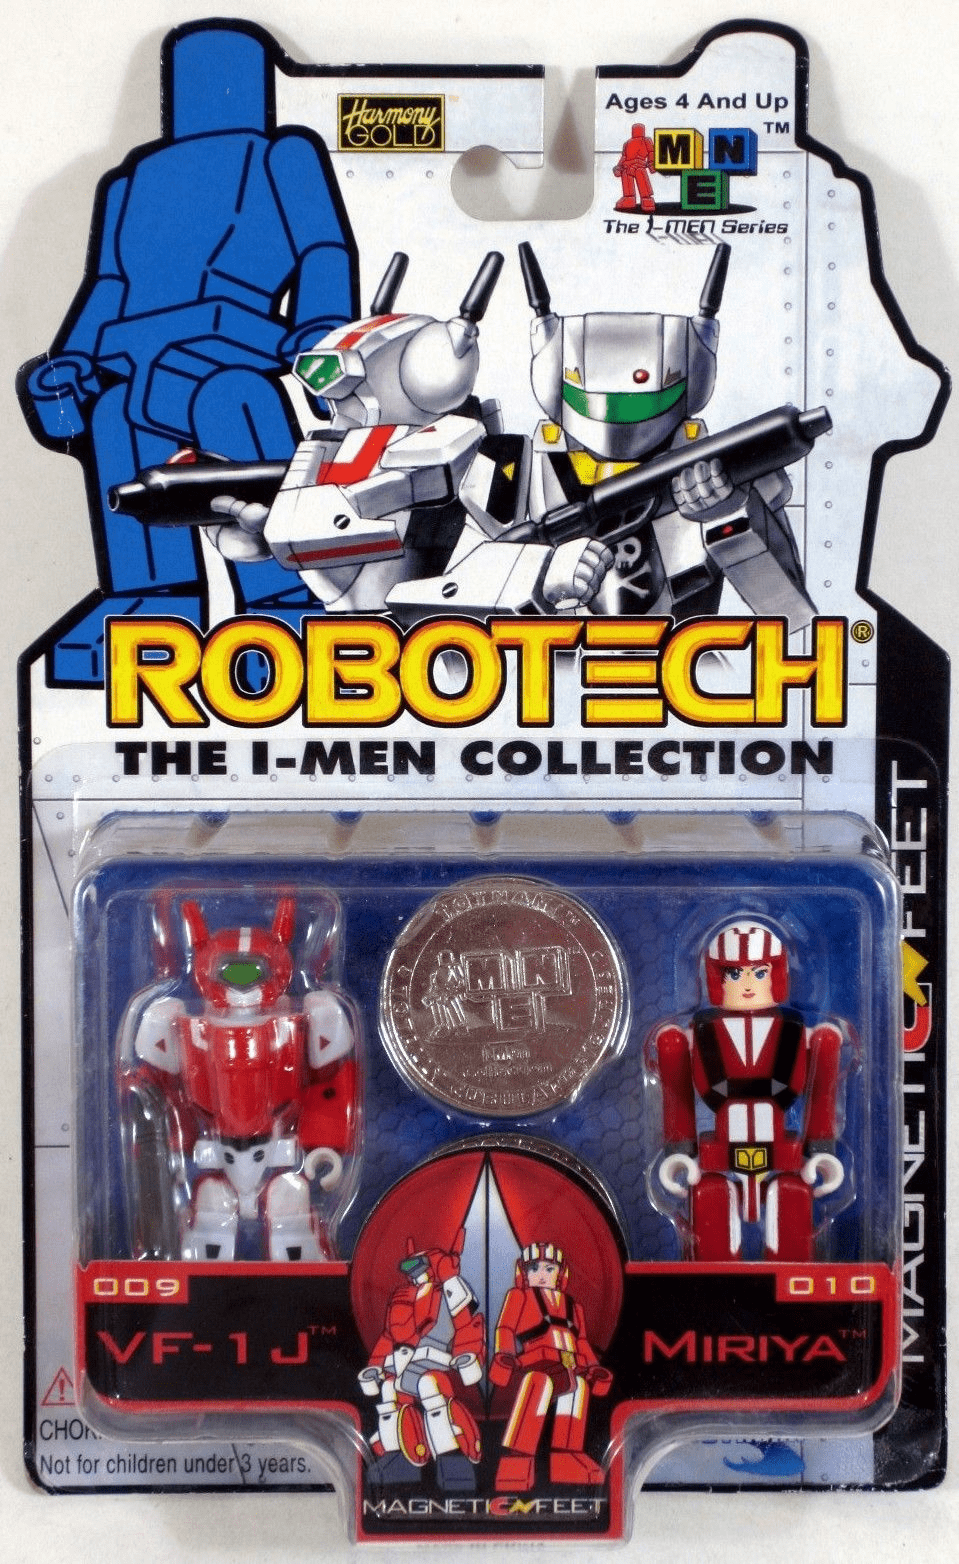 Robotech The I-Men Collection VF-1J and Miriya Set